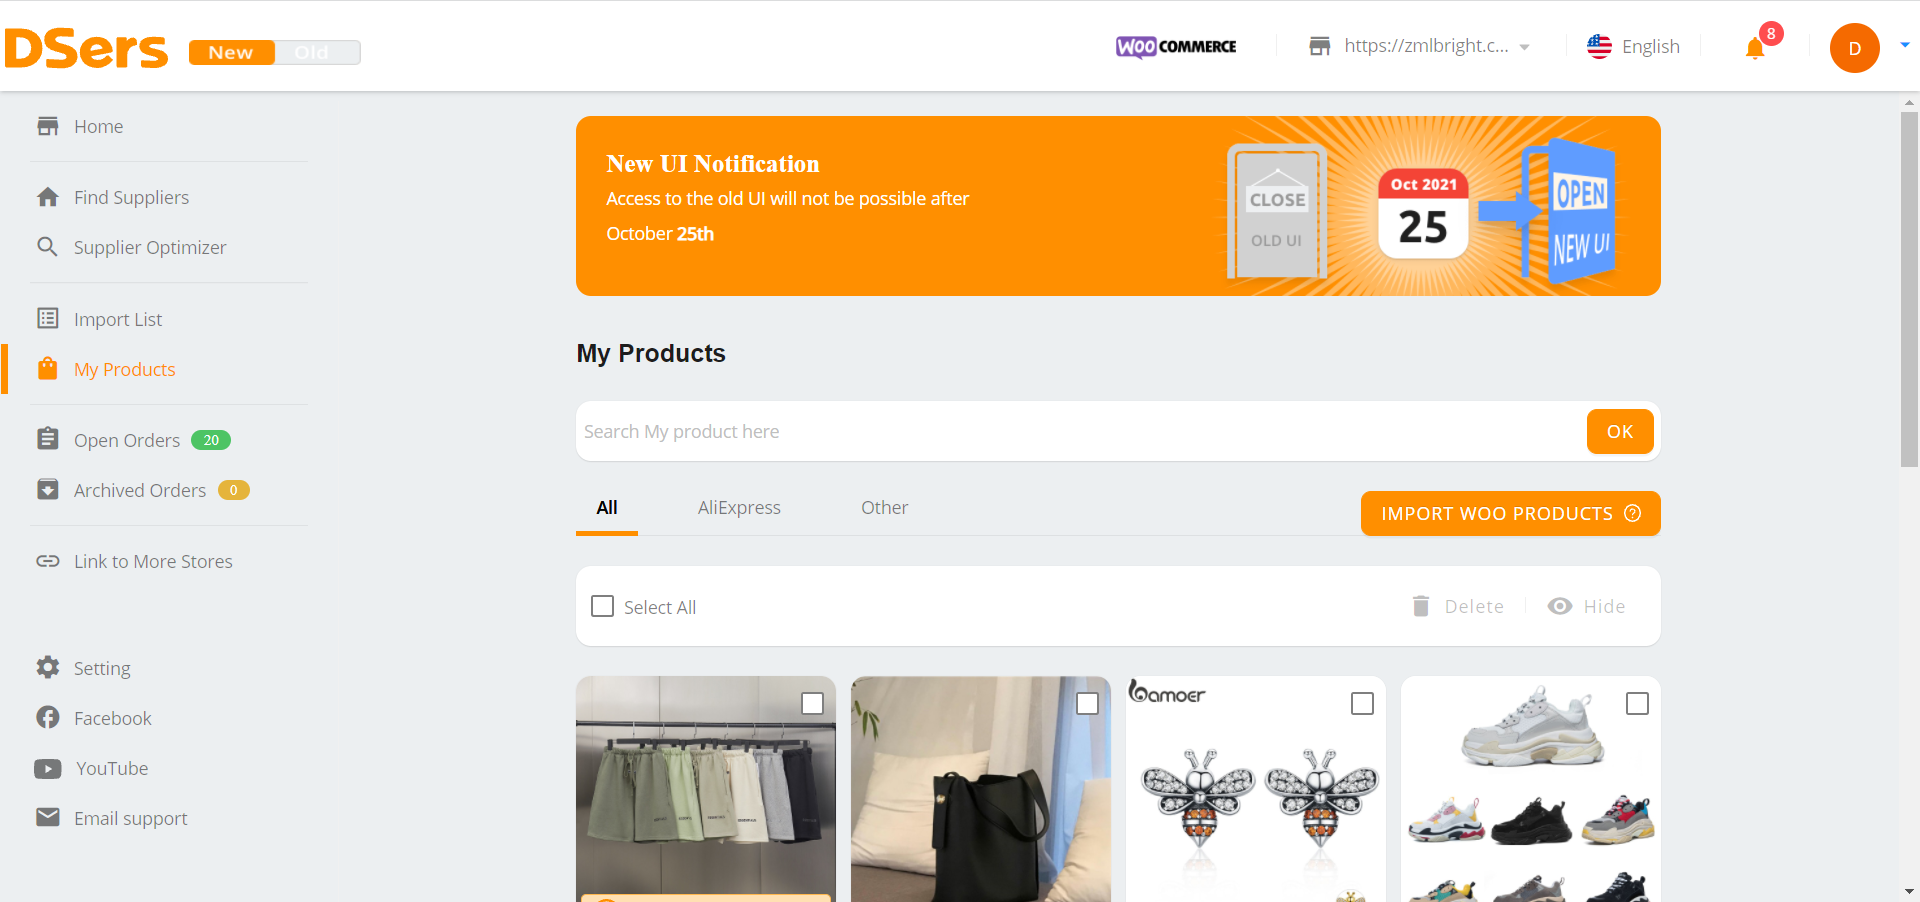 Why Woo DSers failed to connect to your WooCommerce store - Go back to DSers - Woo DSers